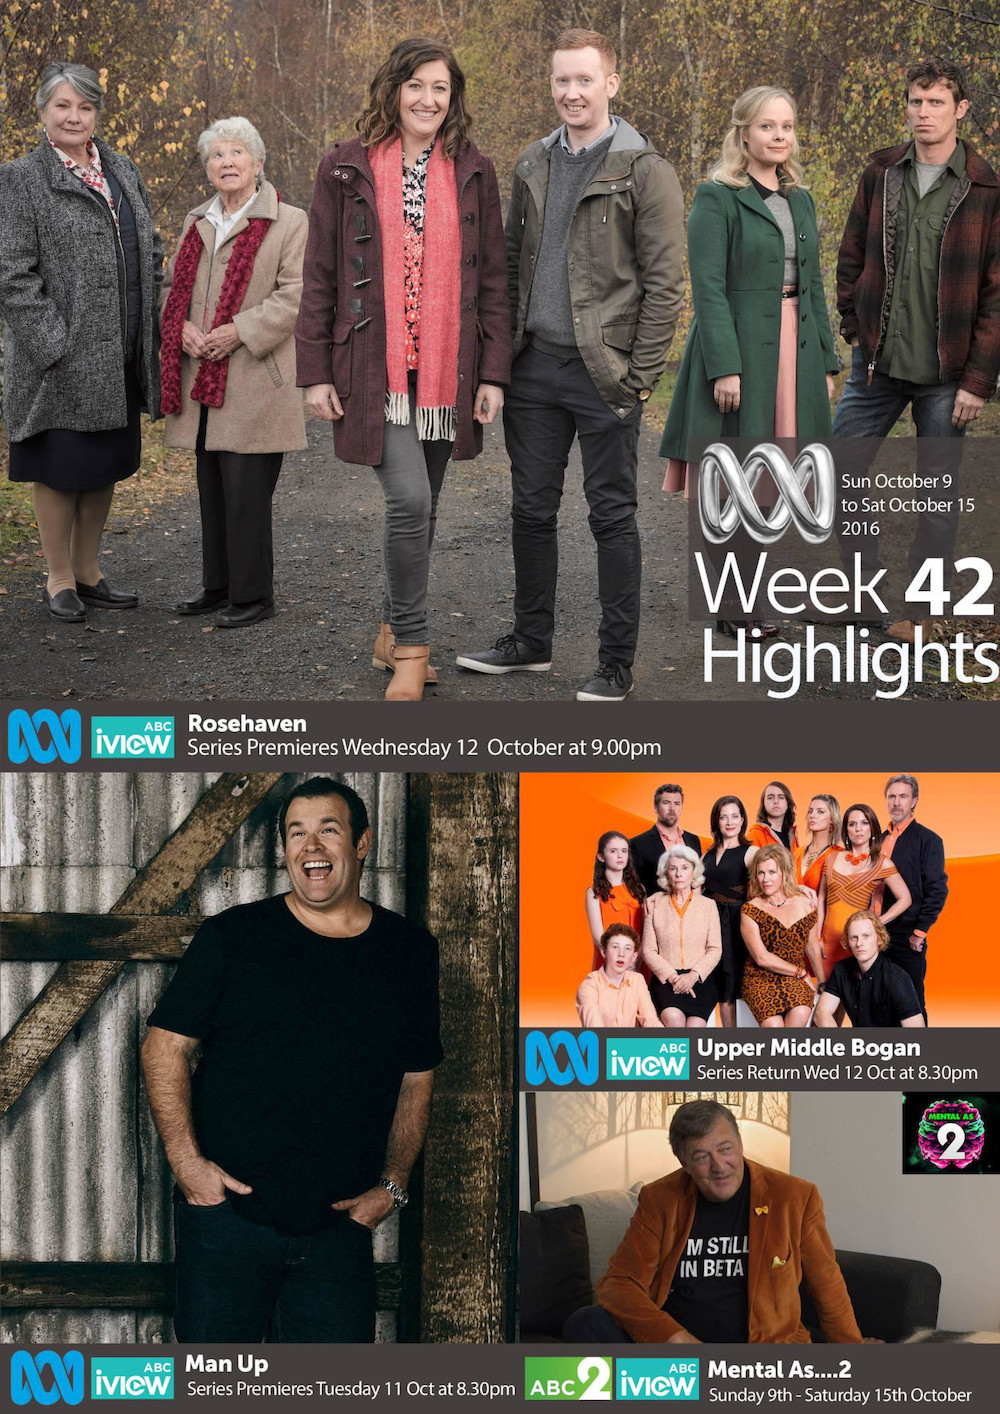 ABC Program Highlights - Week 42